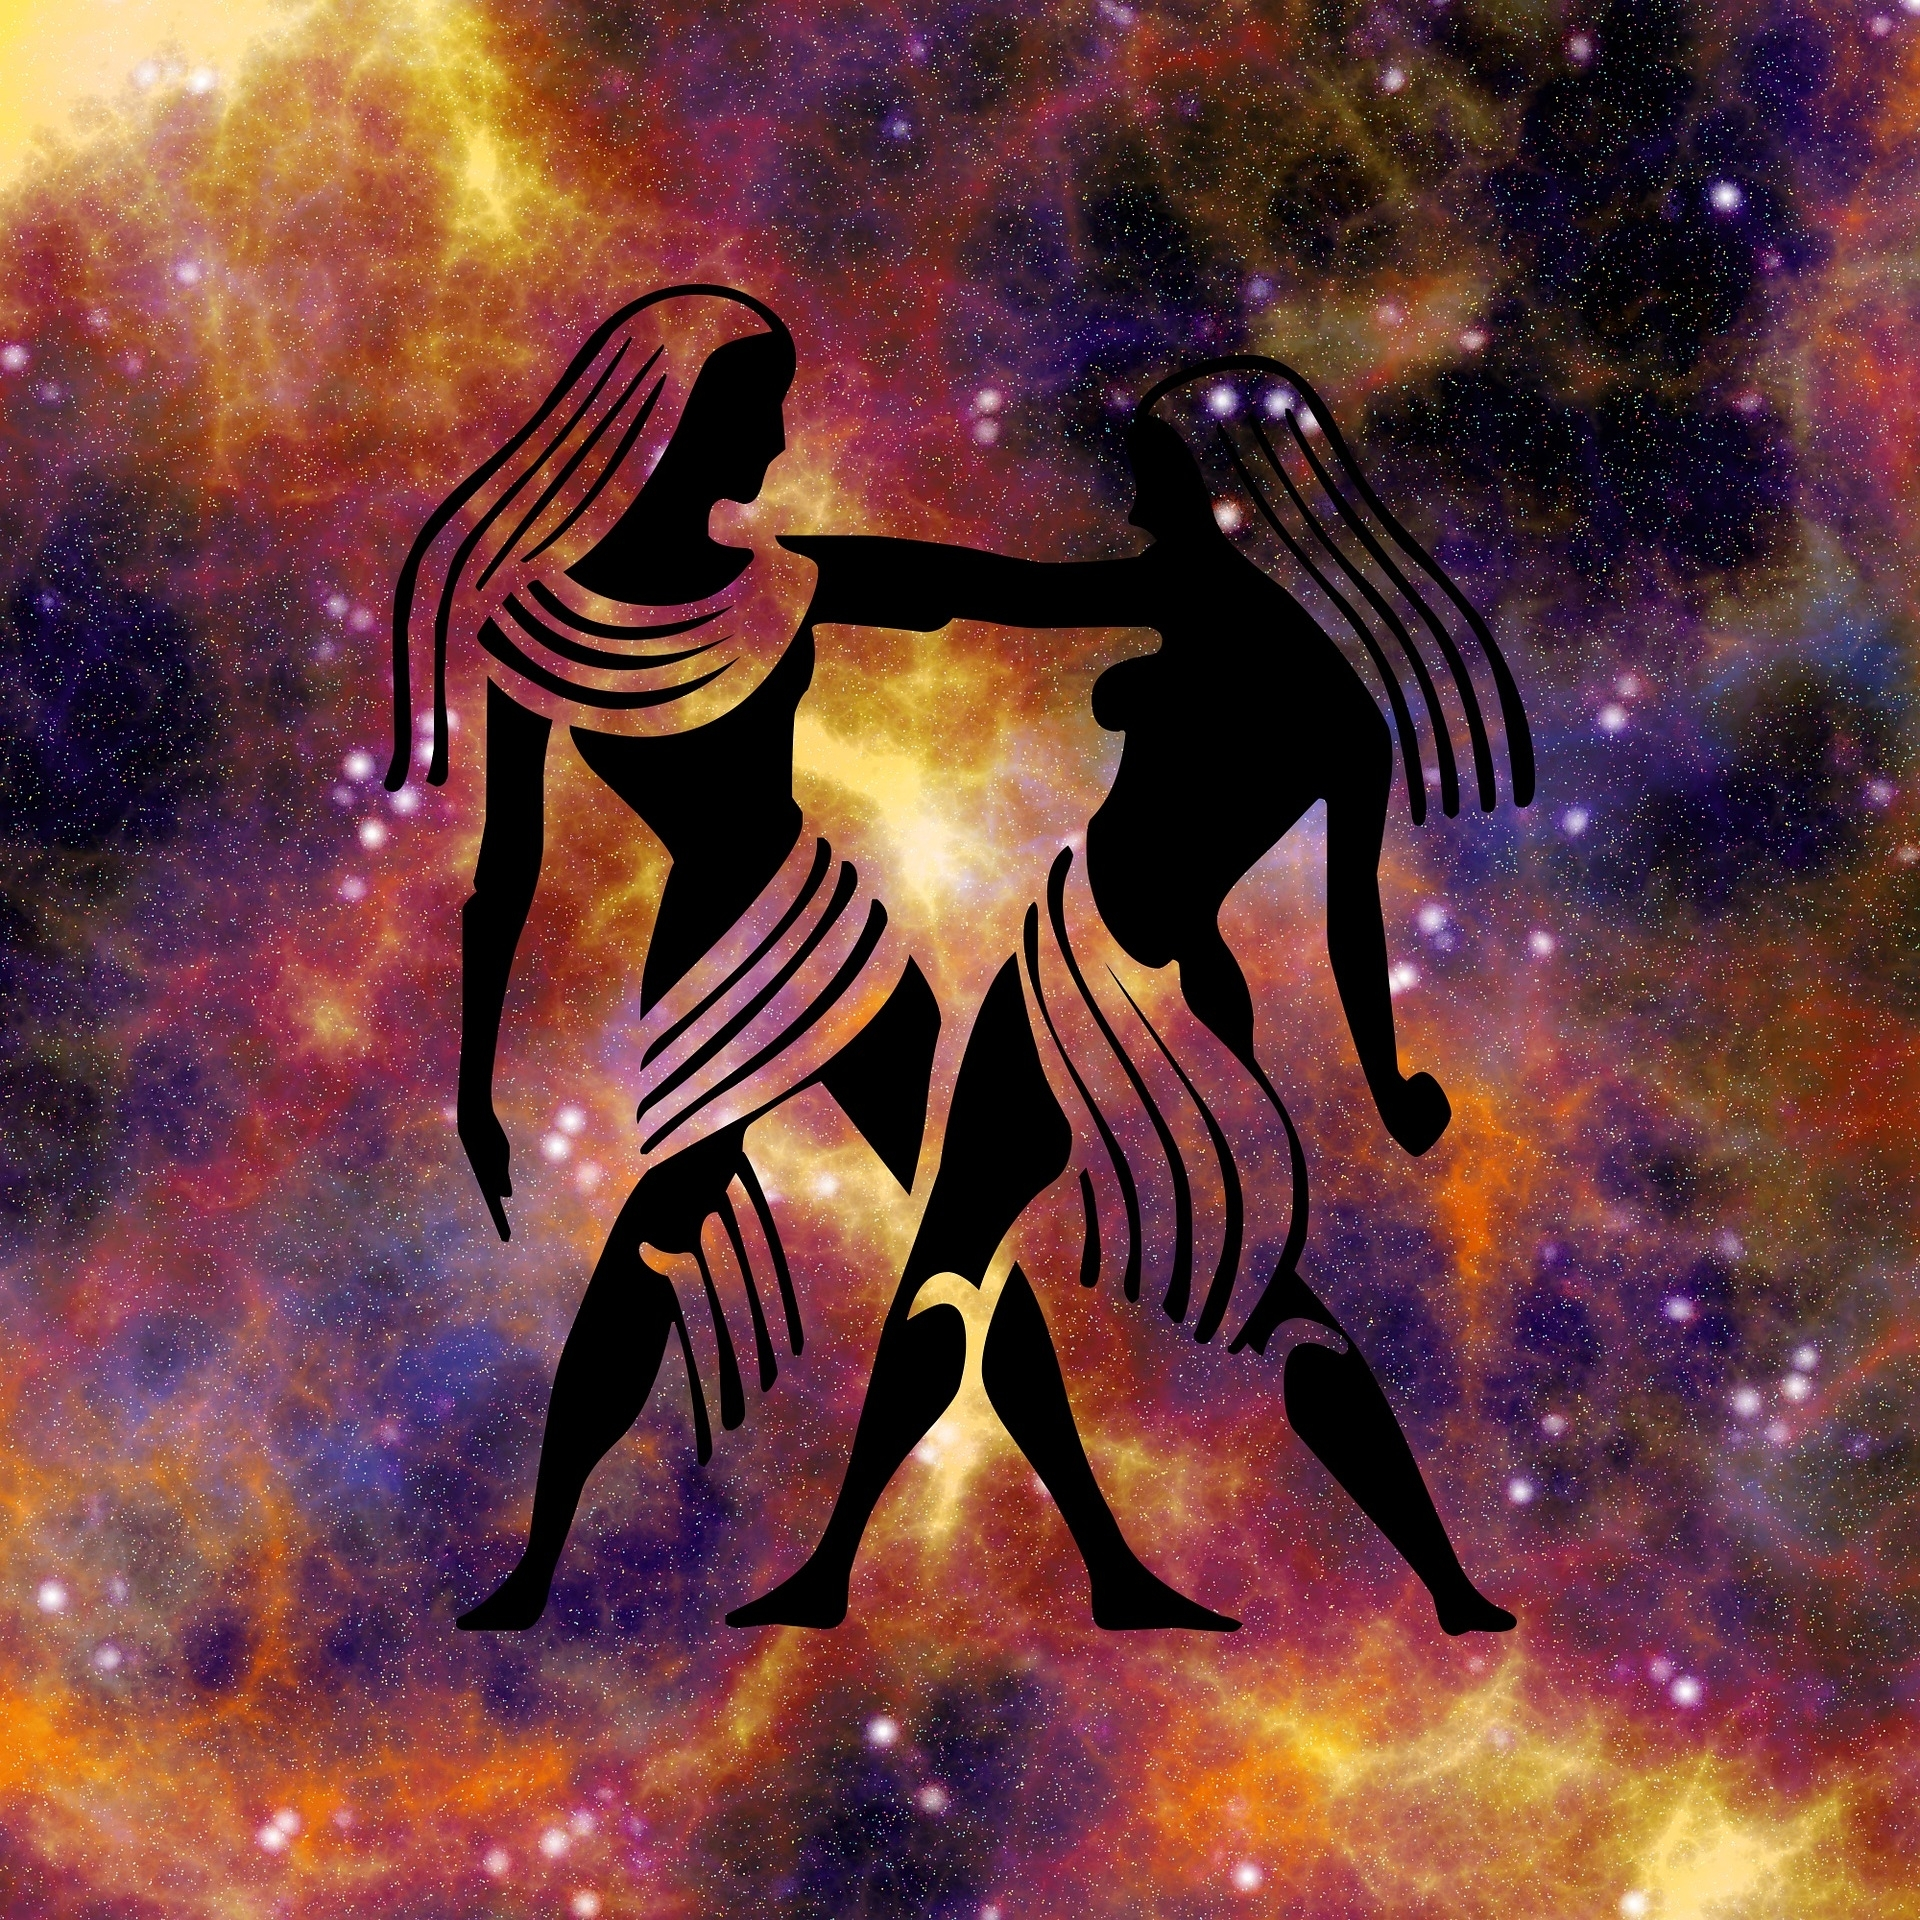 Gemini Zodiac Sign 2019 | The Old Farmer's Almanac